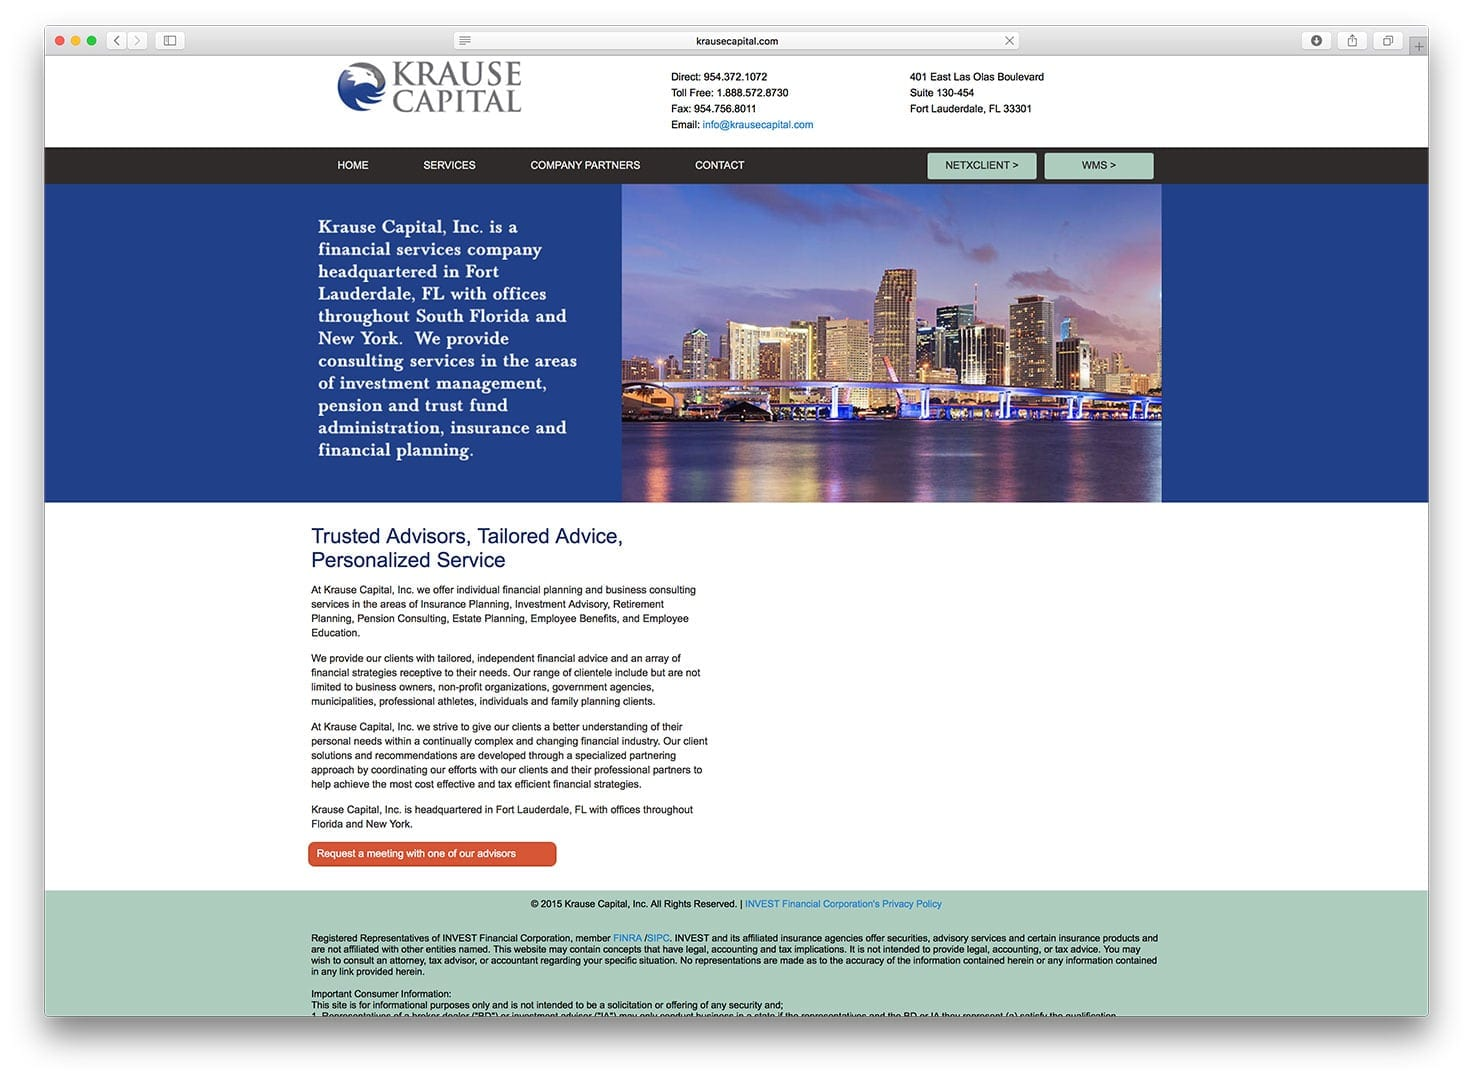 Krause Capital Web Design - Finance Web Design - sliStudios - Miami Beach